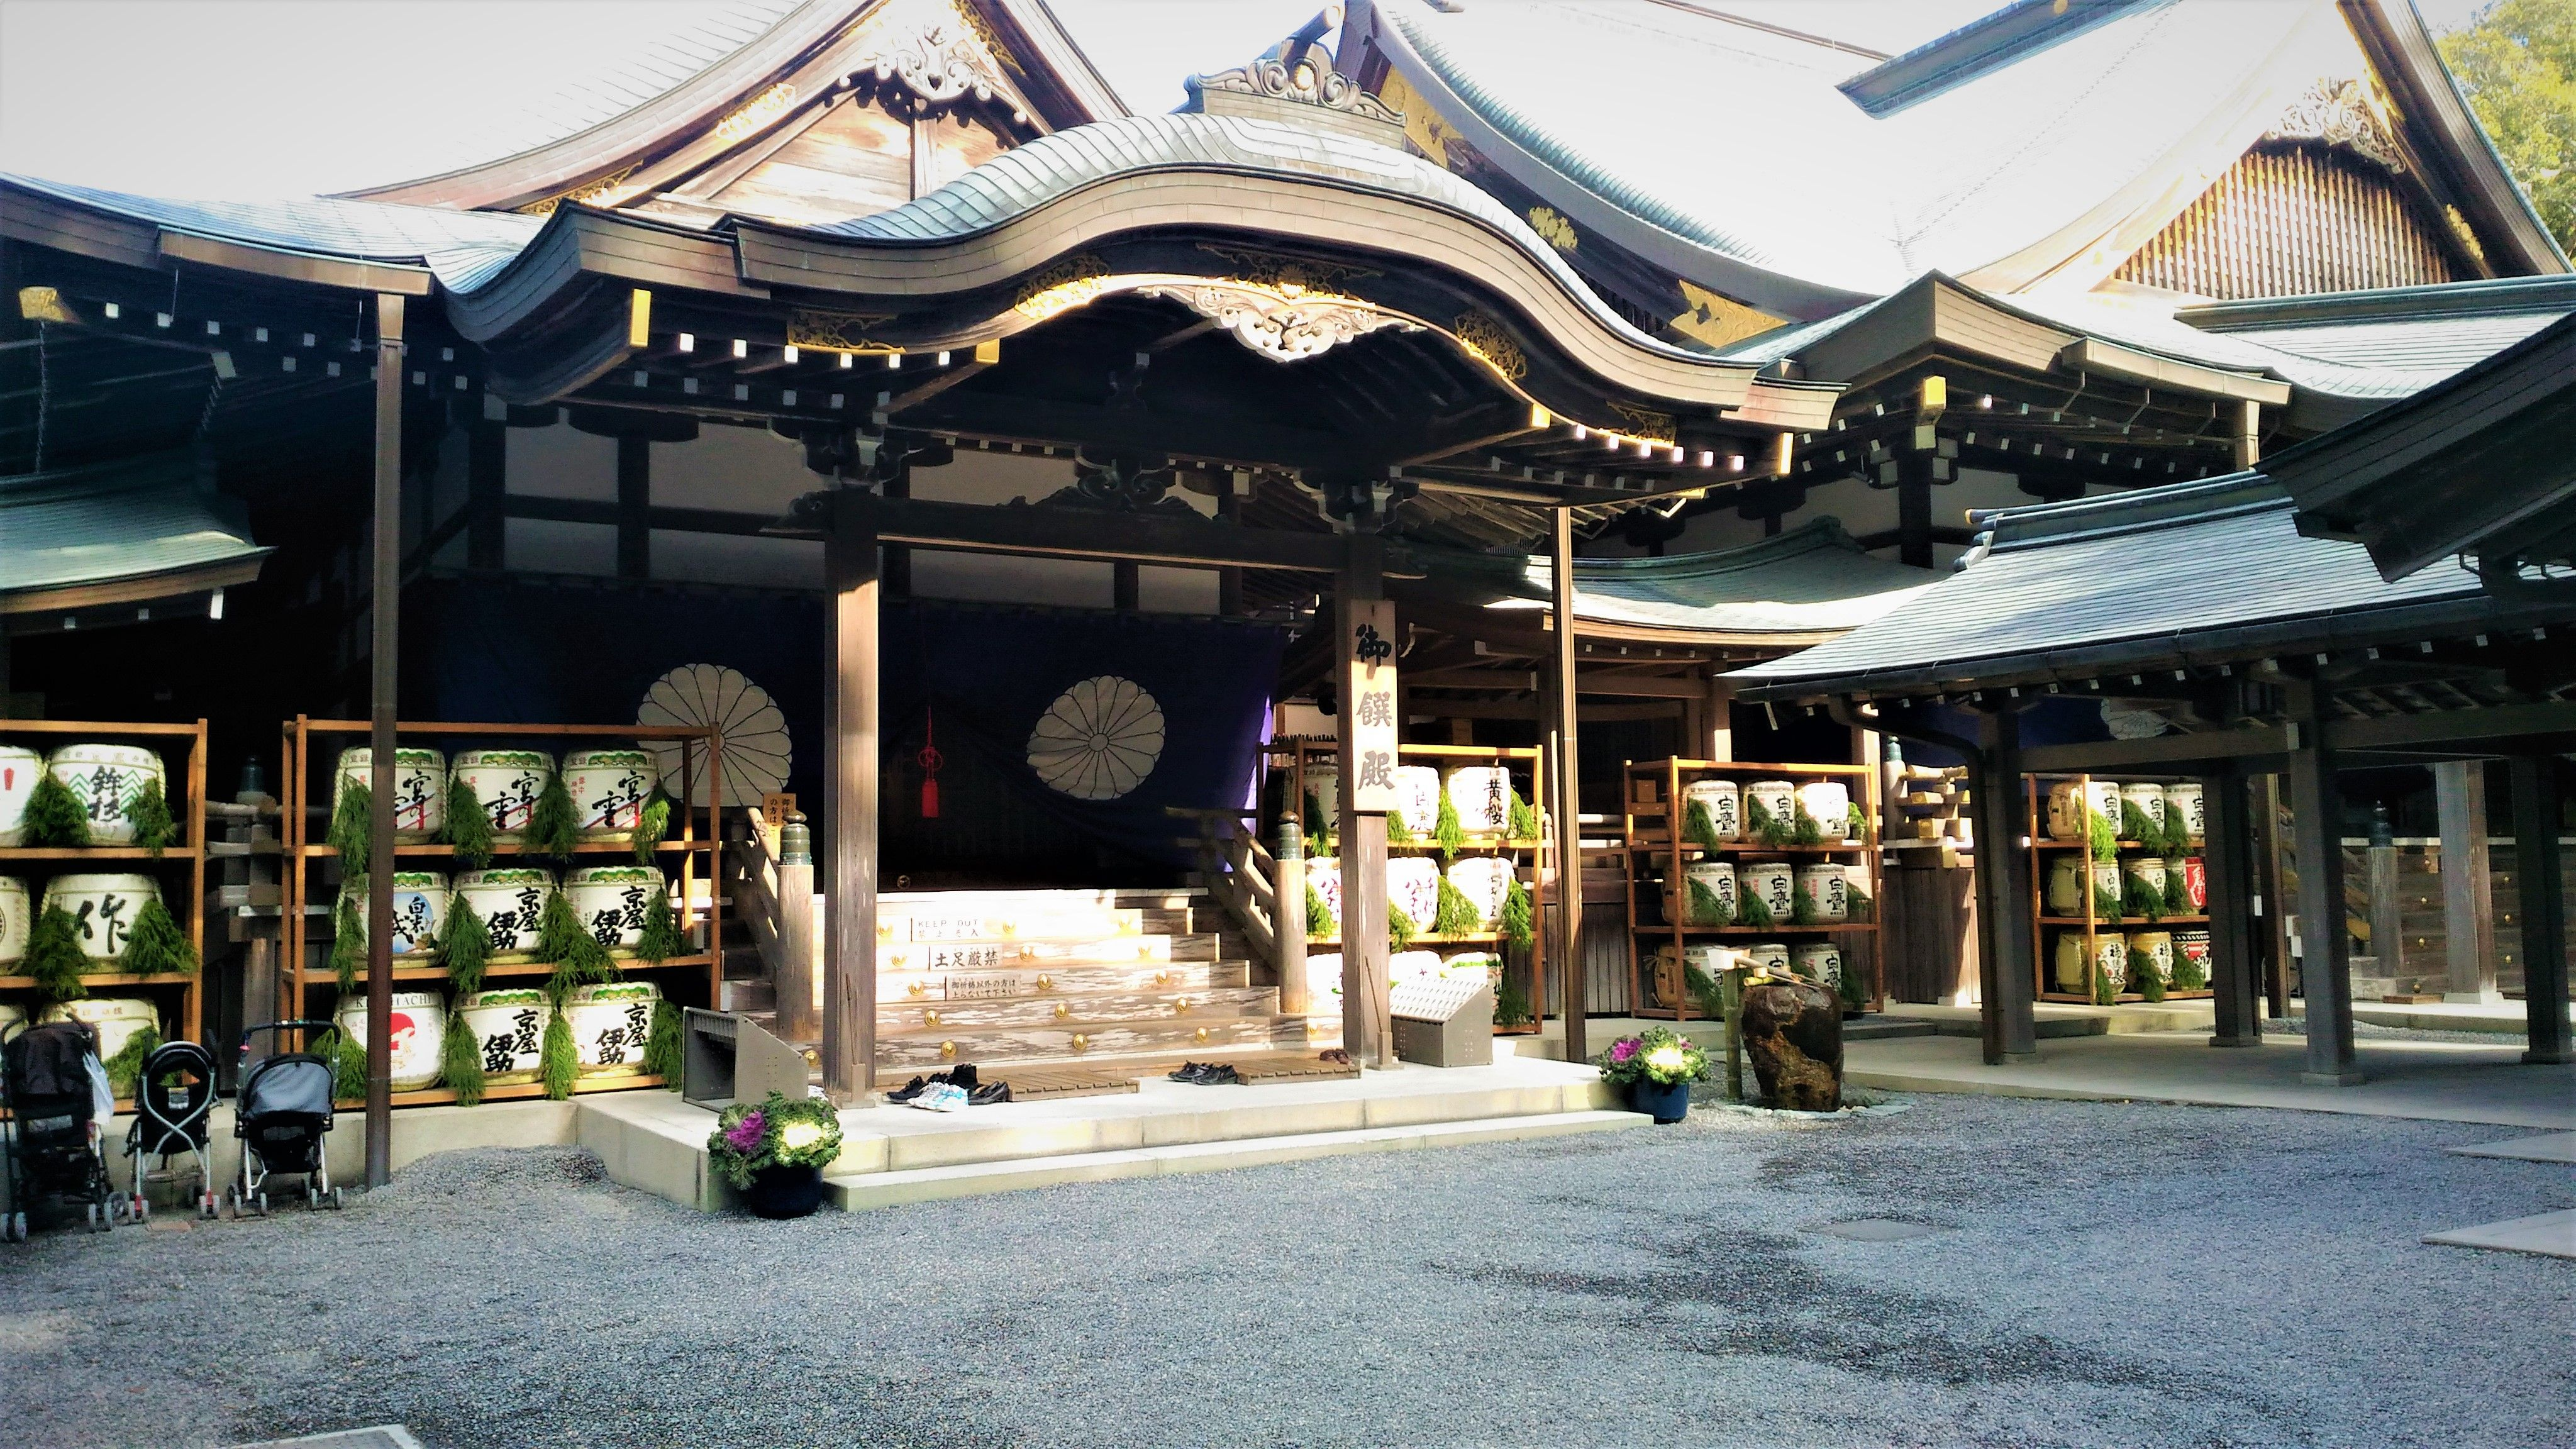 The Official Name Of The Ise Shrine Is Jingu Which Is Located In